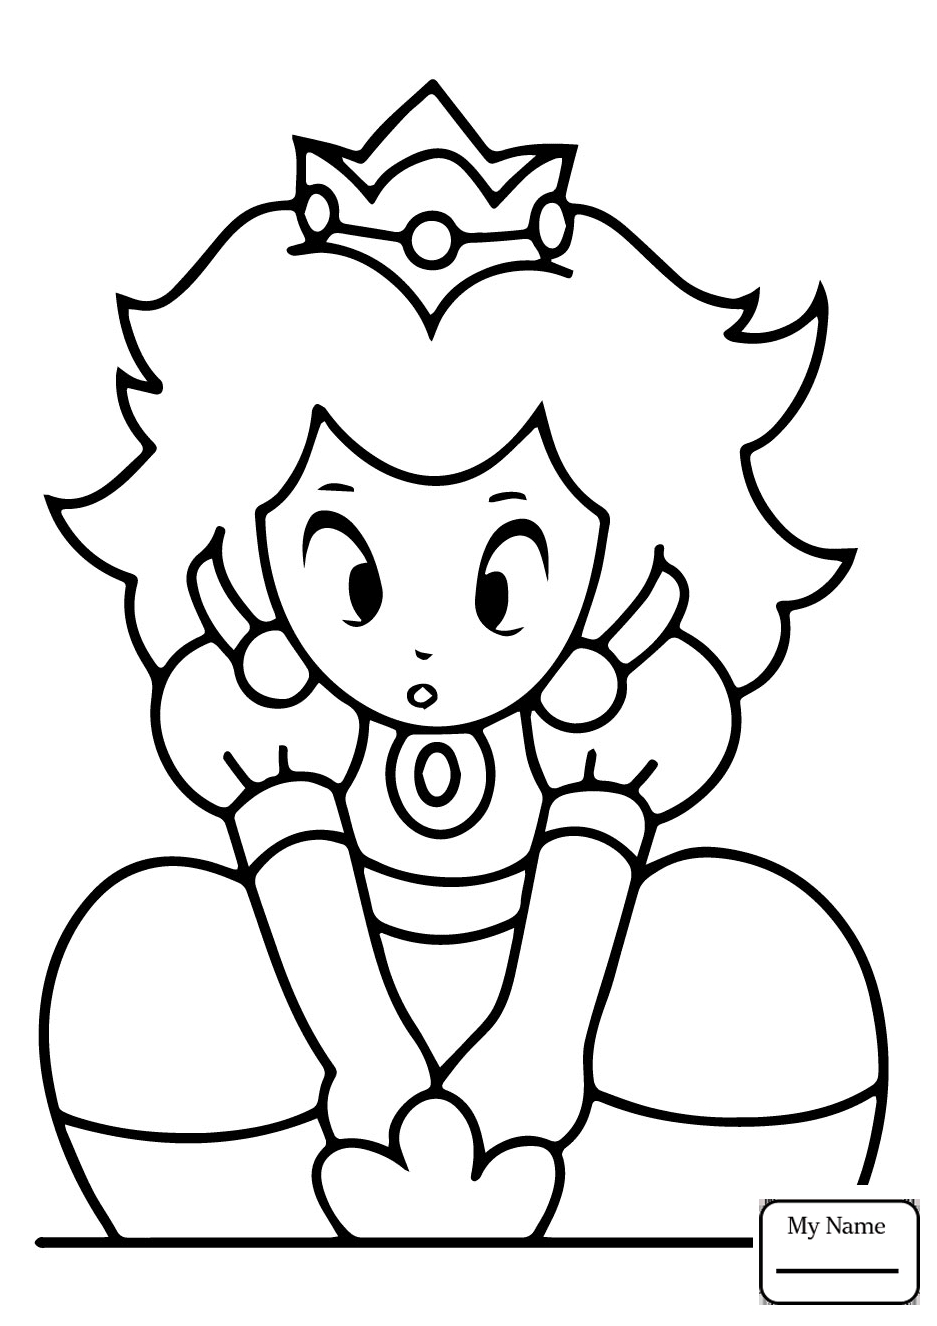 937x1326 Fresh Princess Peach Coloring Pages Gallery Printable Coloring Sheet